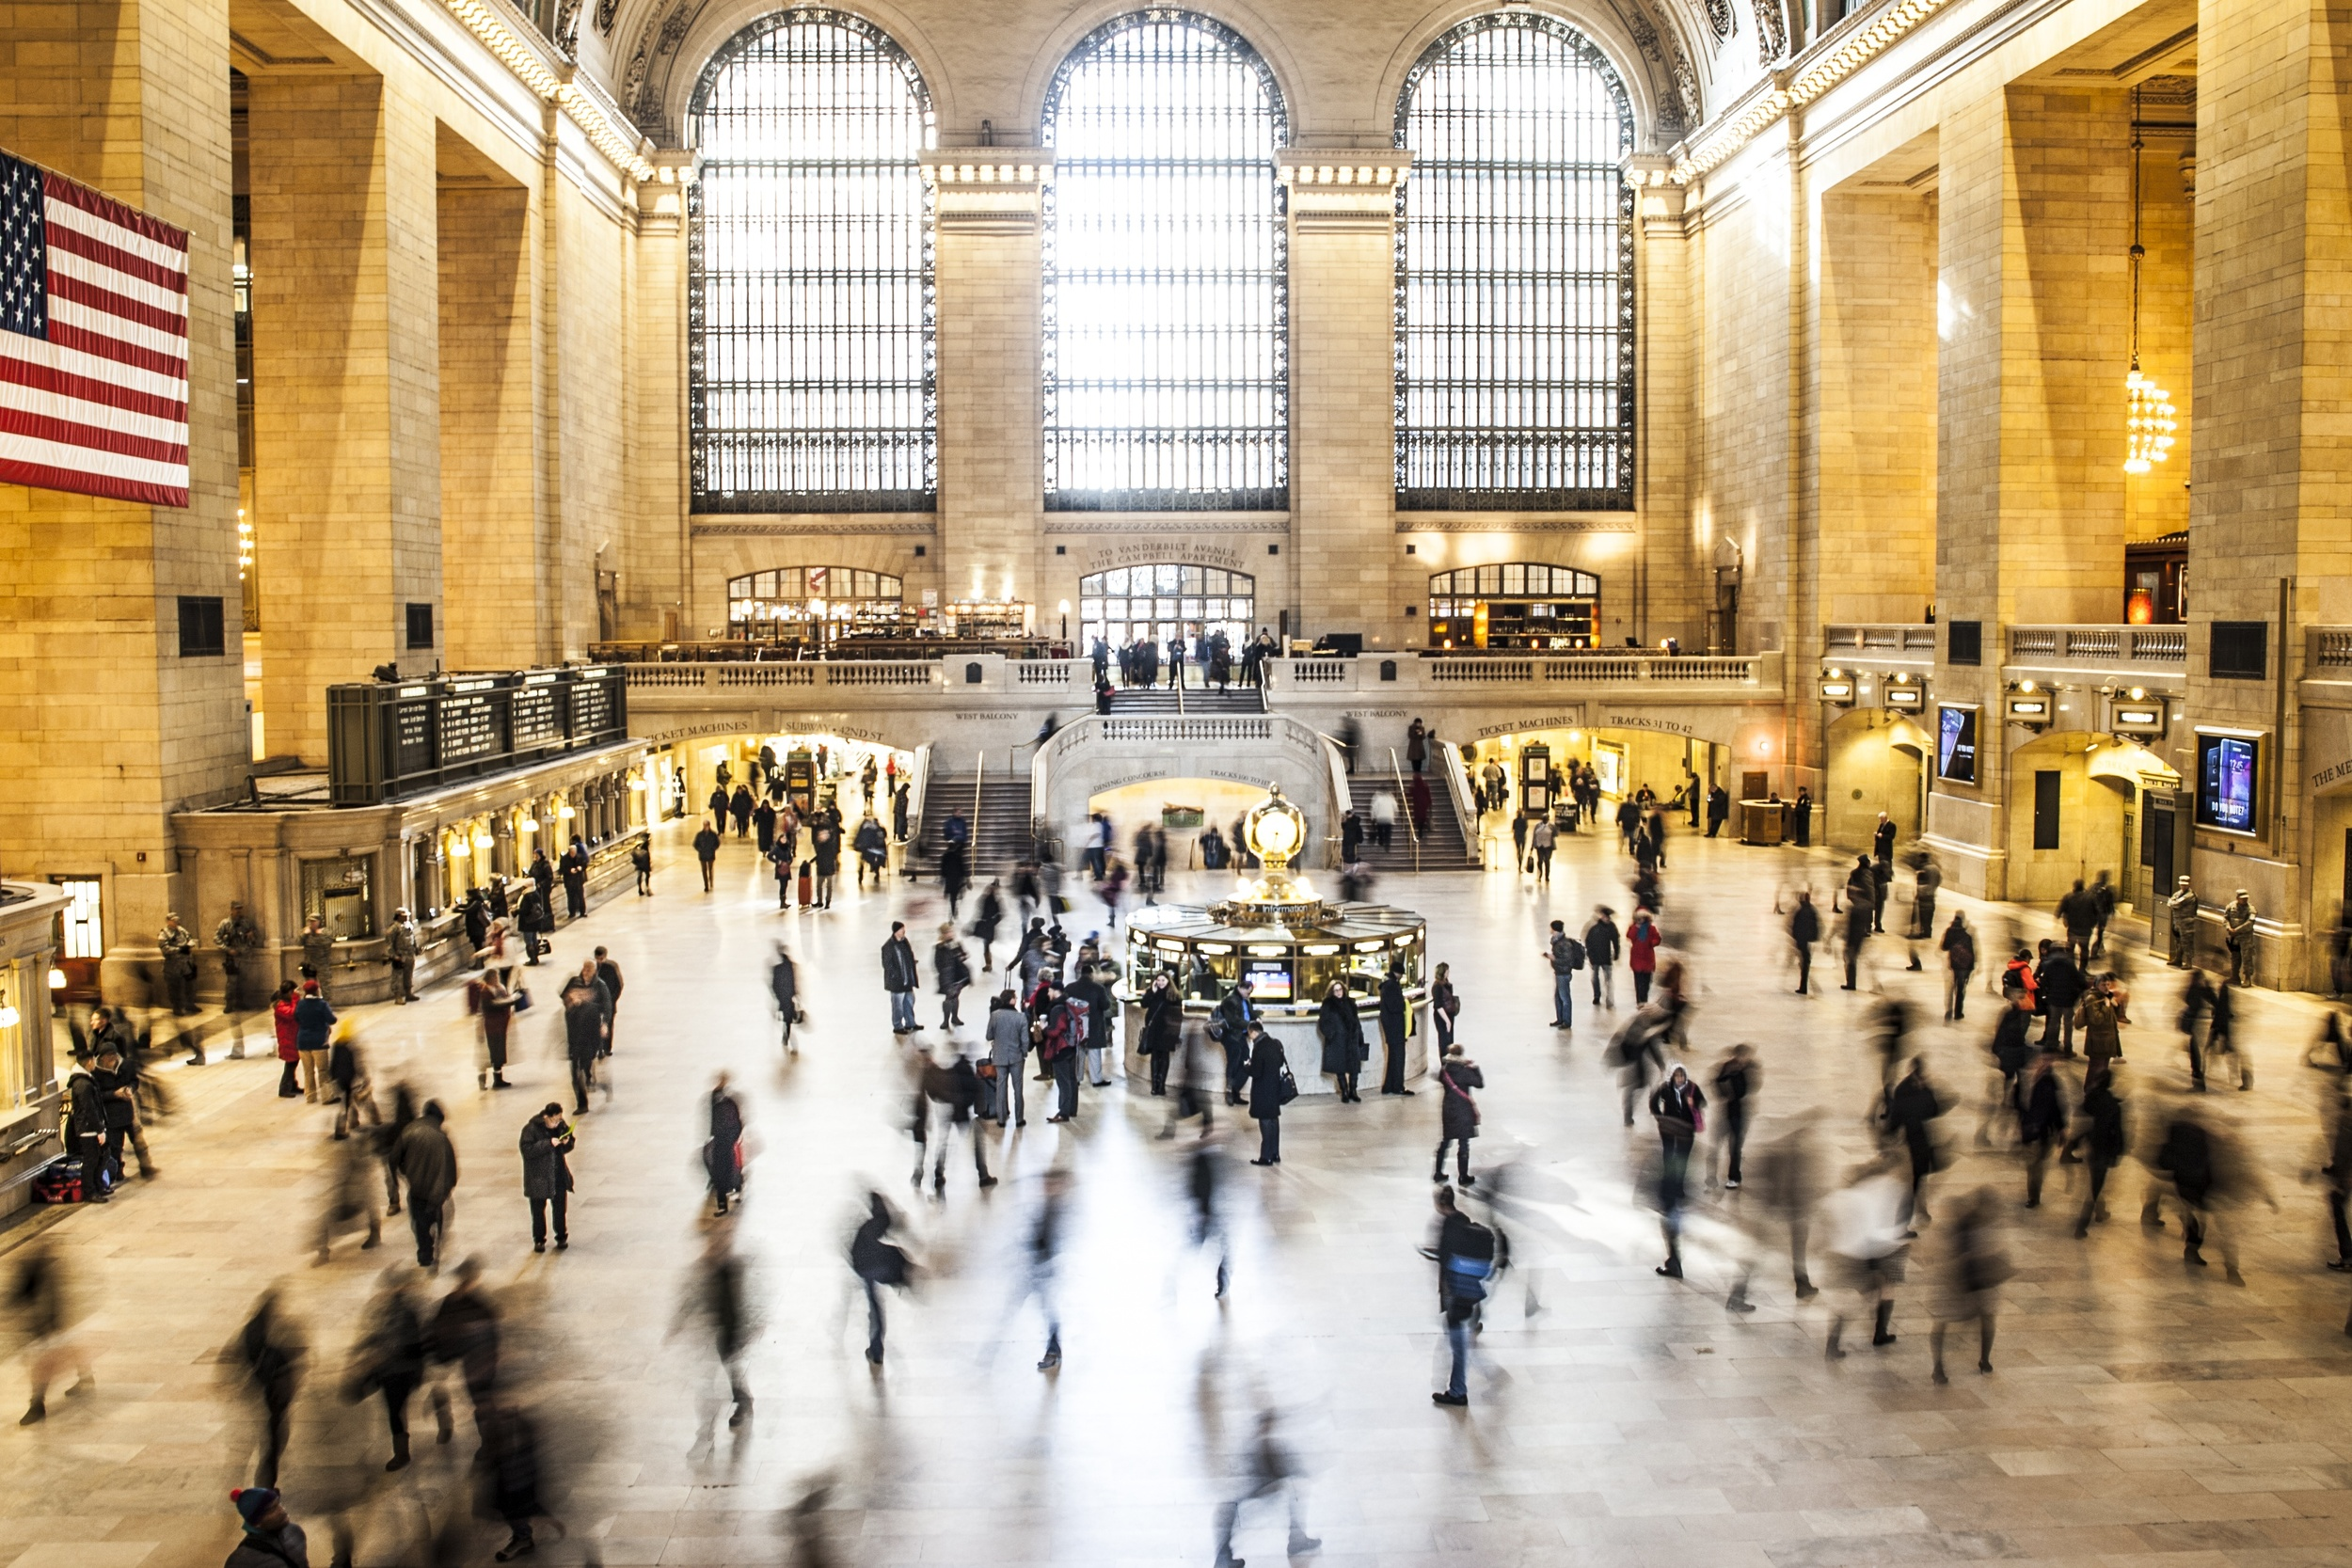 Does your head ever feel like the inside of Grand Central Station, a million thoughts whirring at once? This trick could help. Photo credit: Nicolai Bernsten/Unsplash